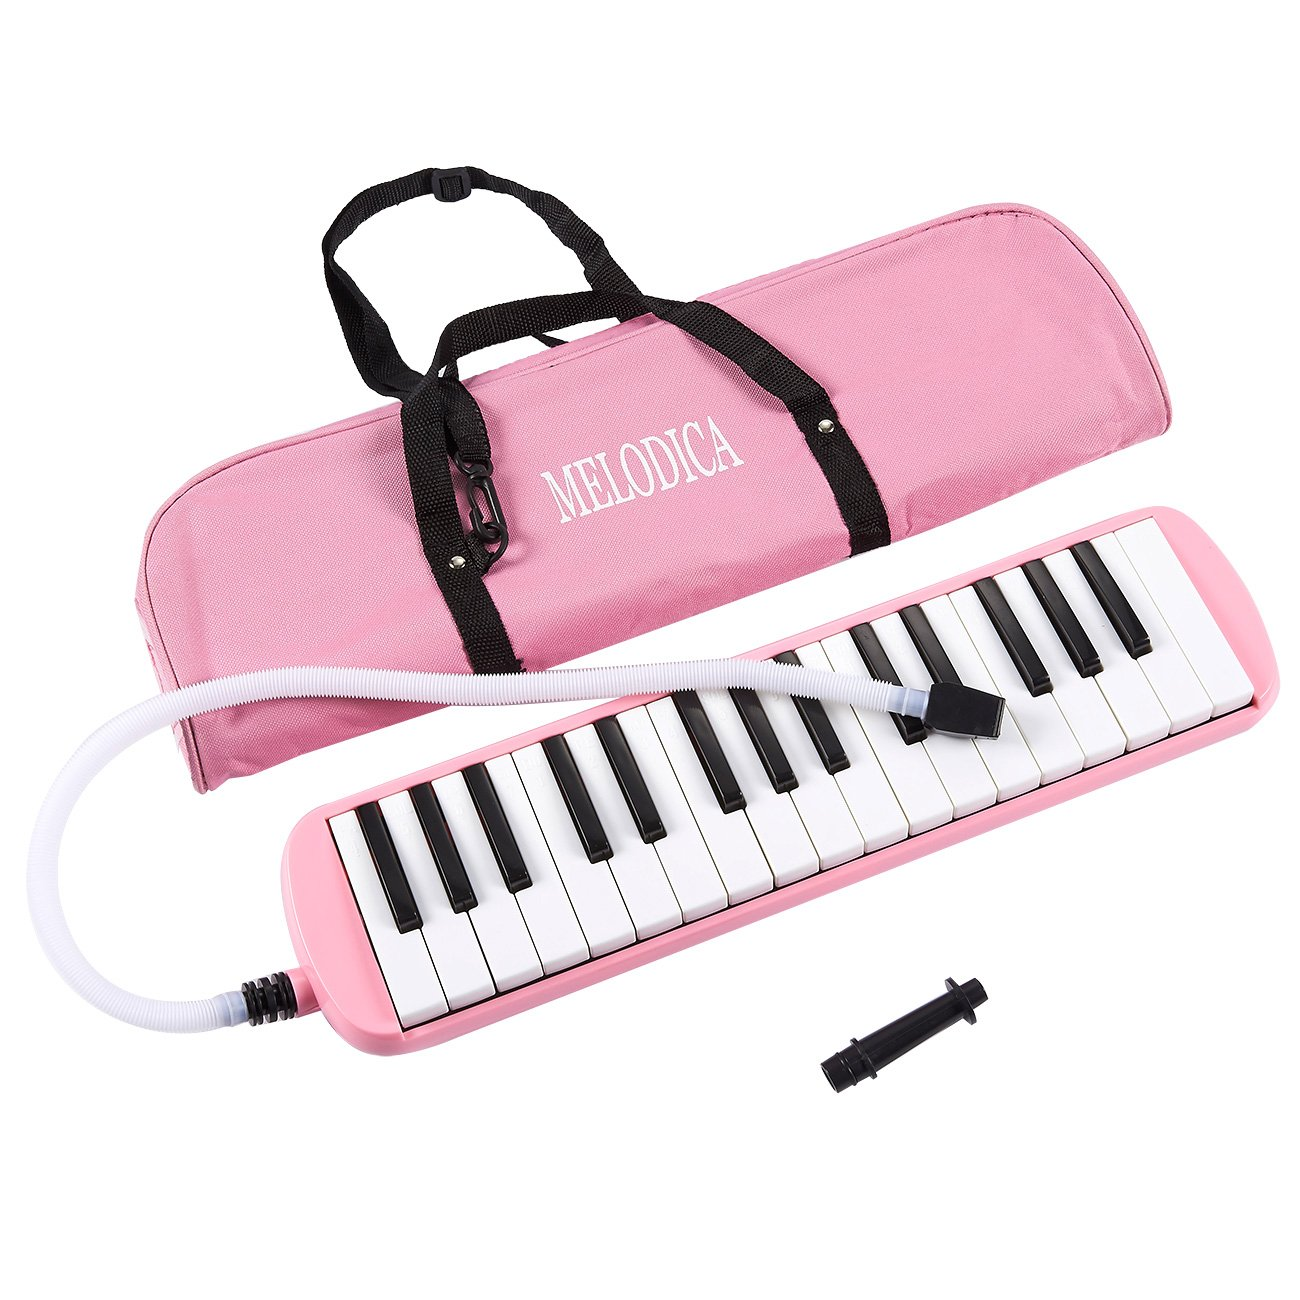 Juvale Melodica Keyboard - 32 Key Piano Style Melodion, Students Musical Instrument, Suitable Beginners Children, Includes Carrying Bag, Pink, 16.46 x 1.77 x 3.98 inches